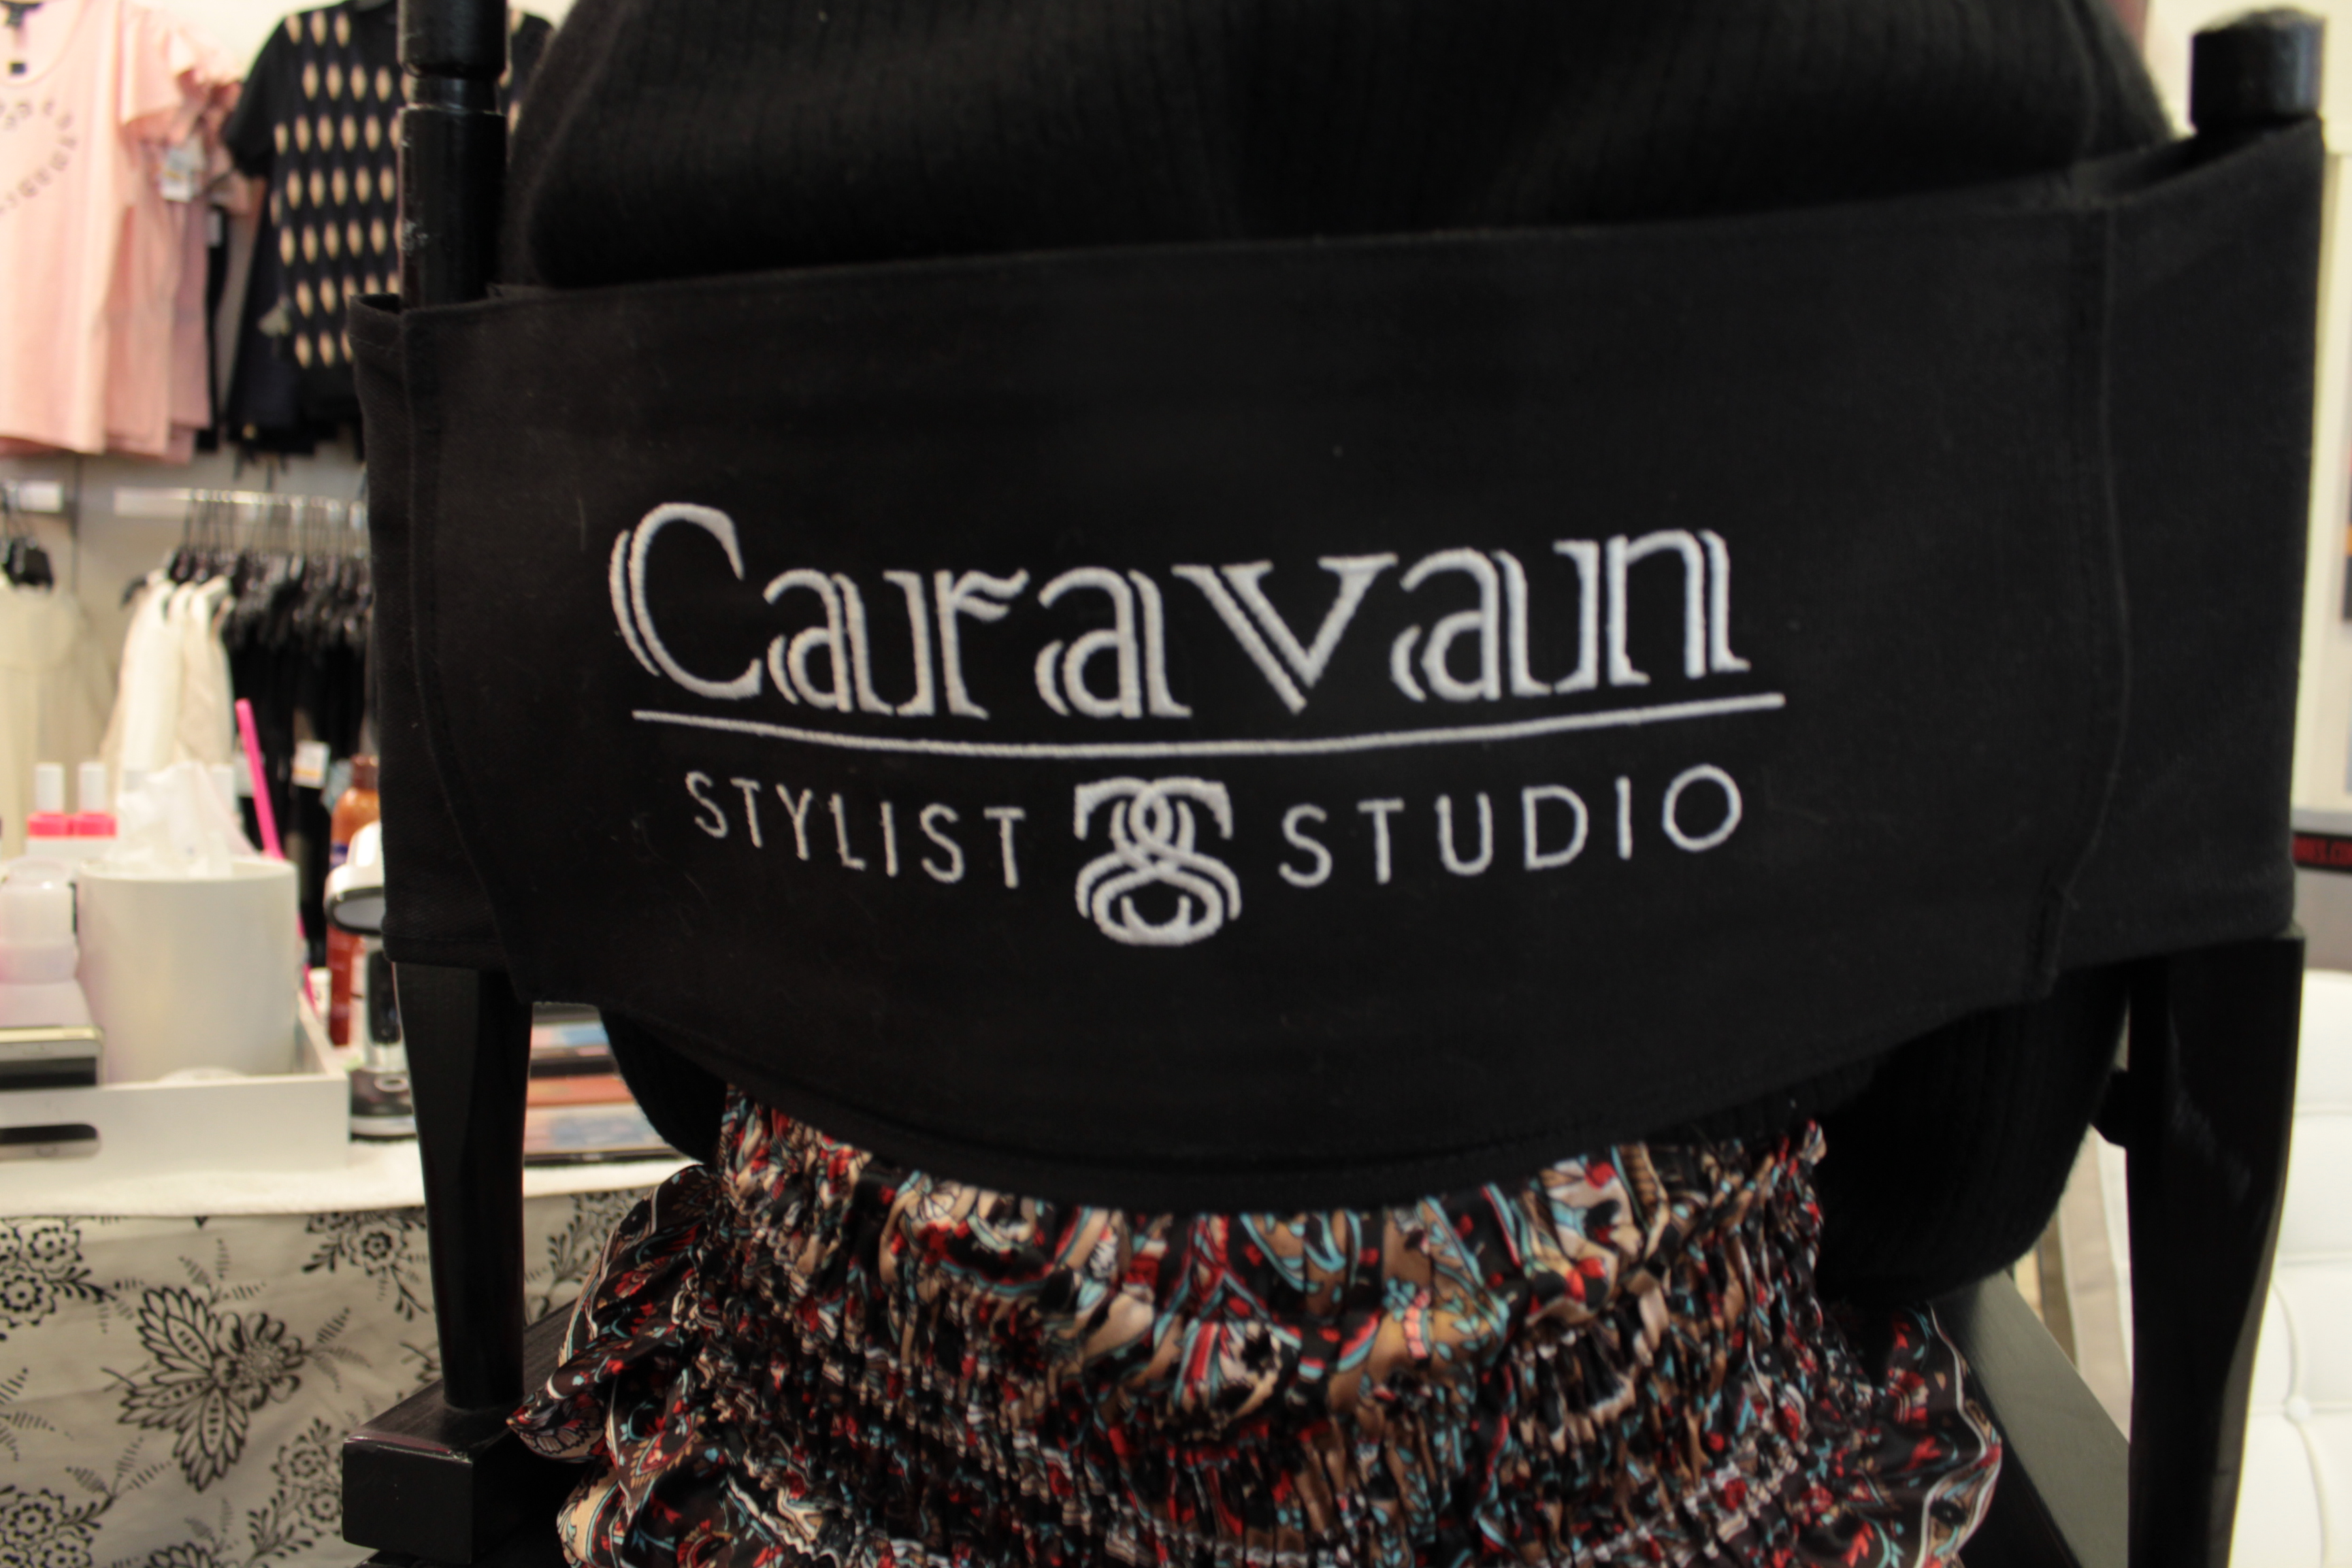 Hair & Makeup with Caravan